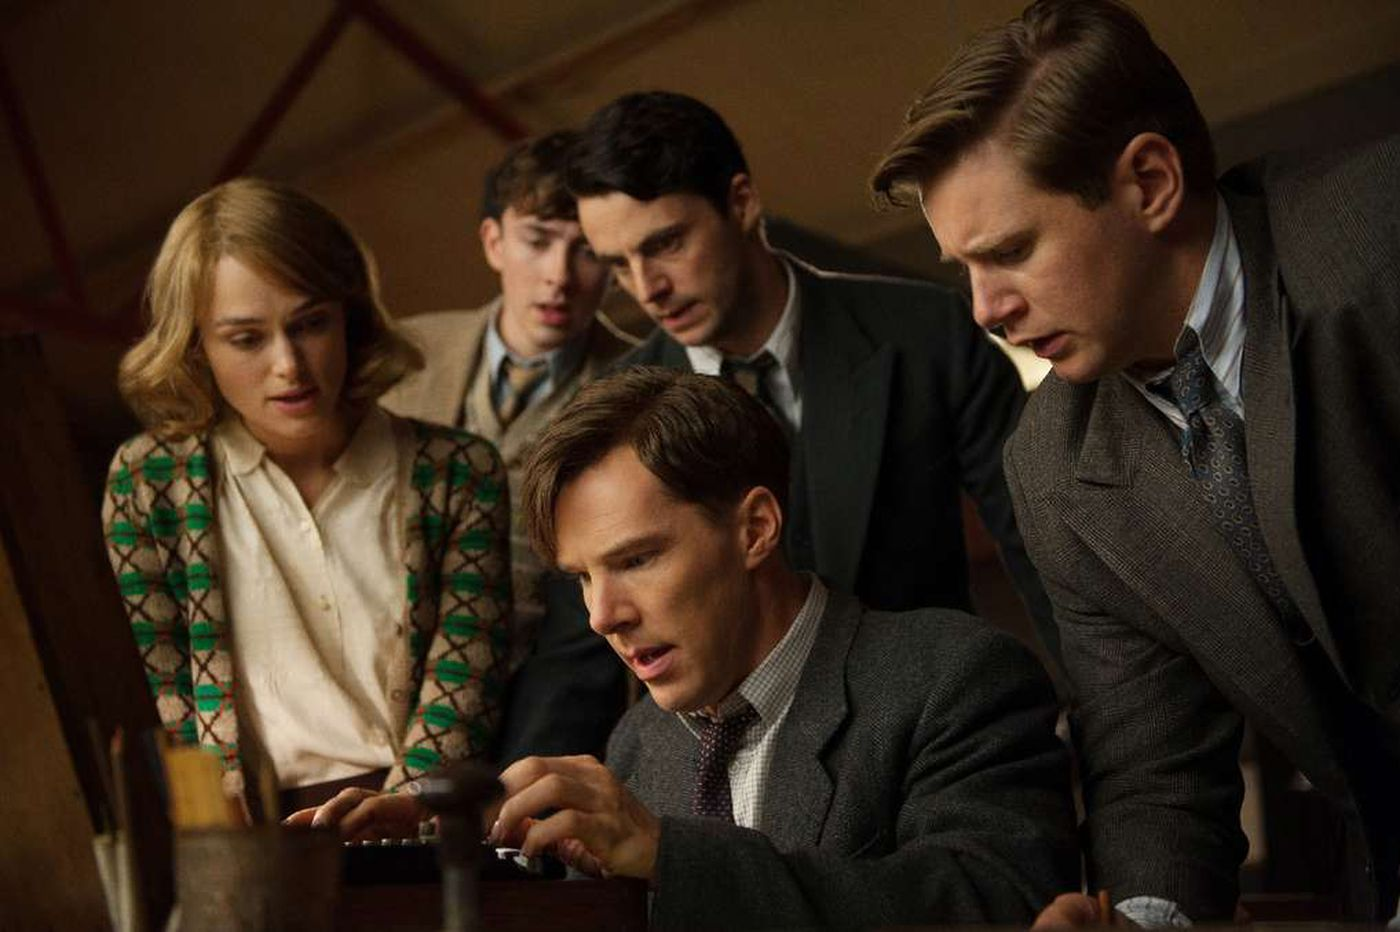 'The Imitation Game' honors wronged WWII hero Alan Turing